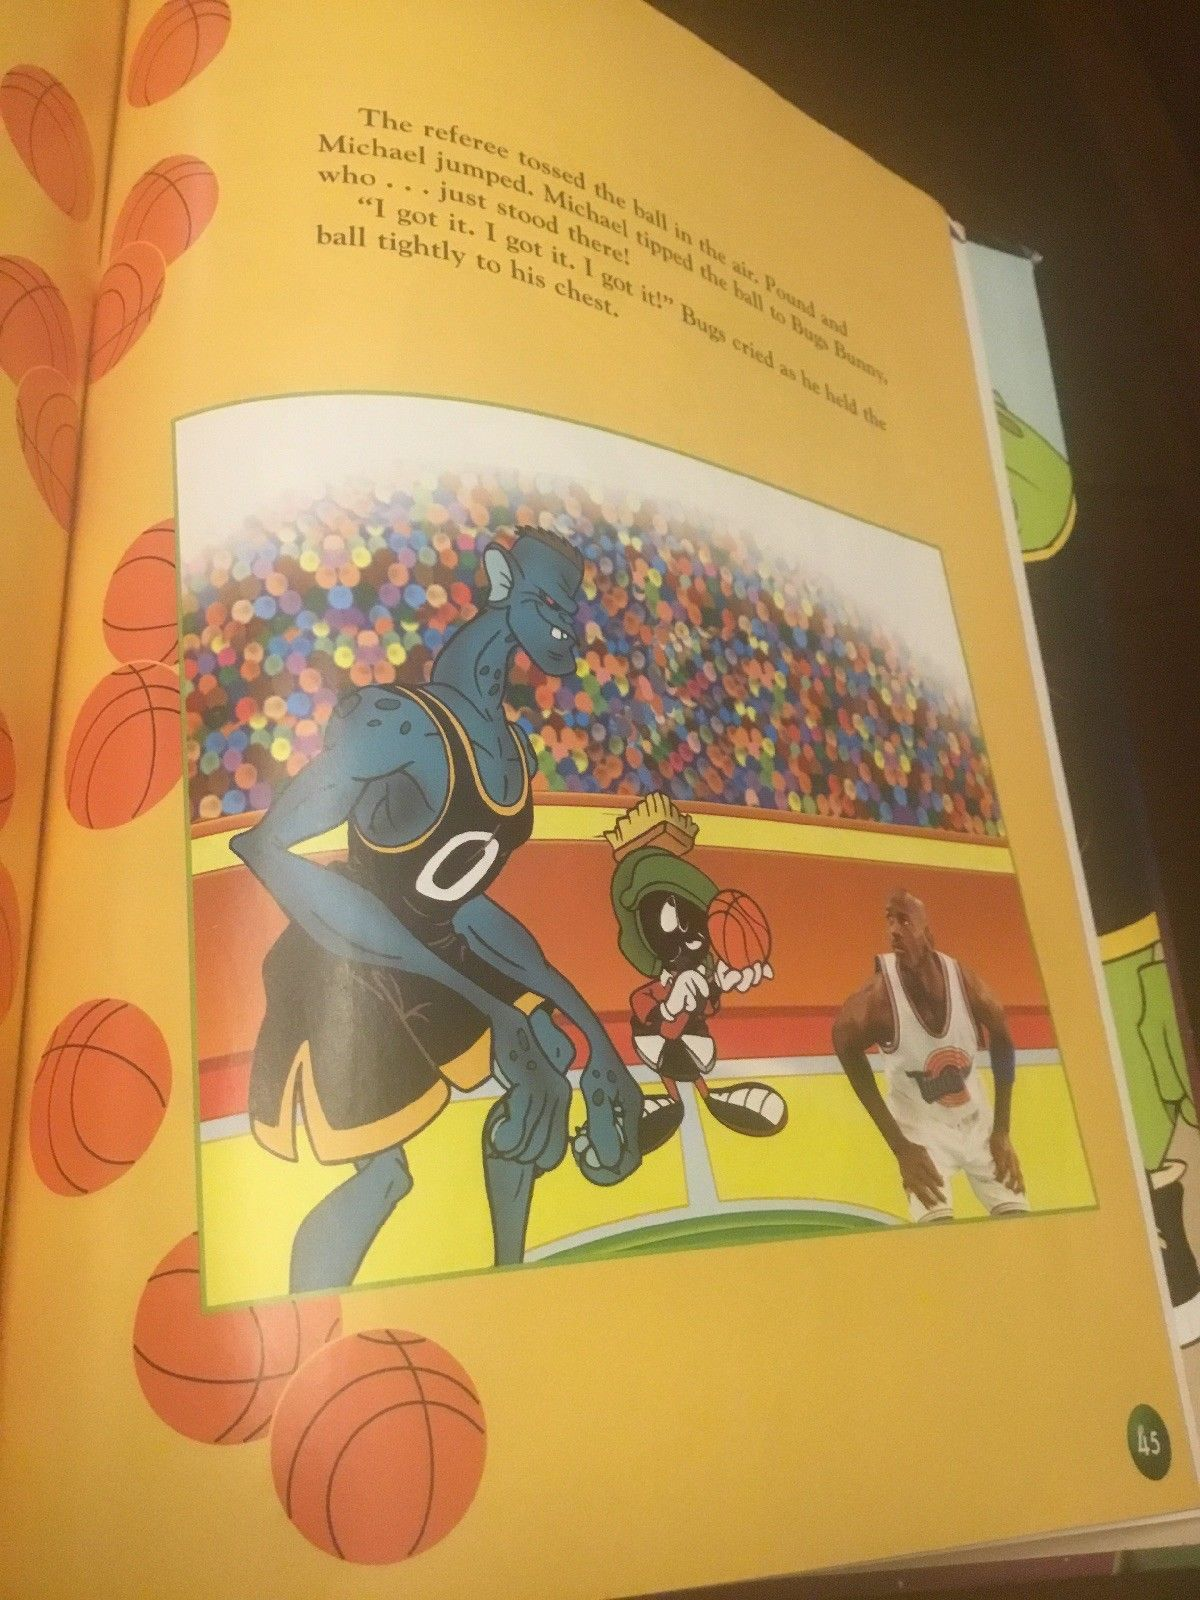 9a3dd0bc1de Space Jam Movie Book Michael Jordan And Loony Tunes Hardcover 1996 Like New  9780590945561